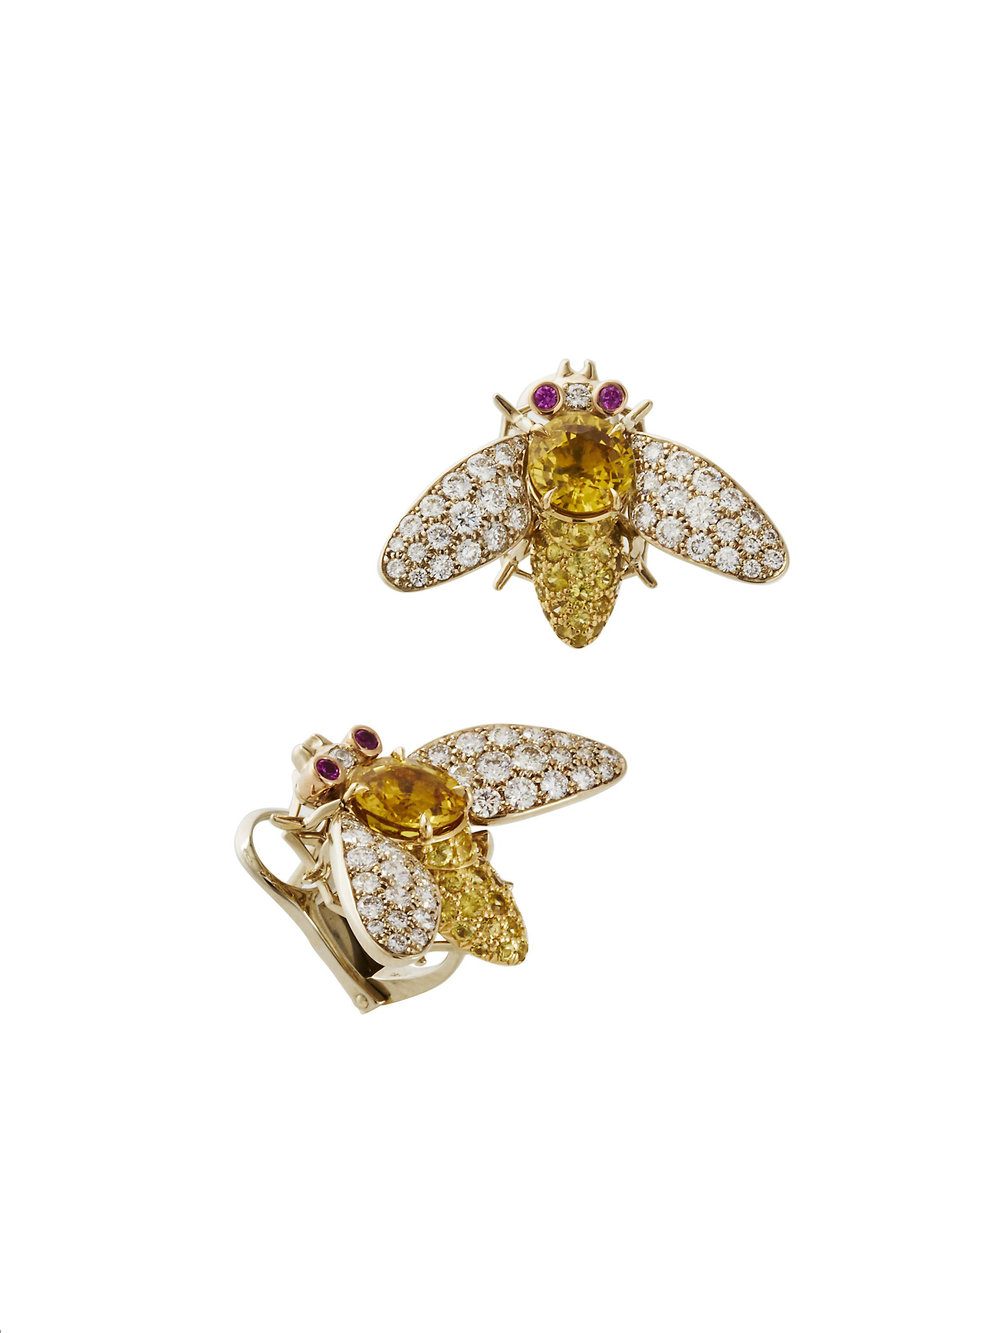 BEATRICE EARRINGS   2.22 CT OF DIAMONDS 6.35 CT OF YELLOW SAPPHIRES 0.12 CT OF RUBIES       Contact for inquiry